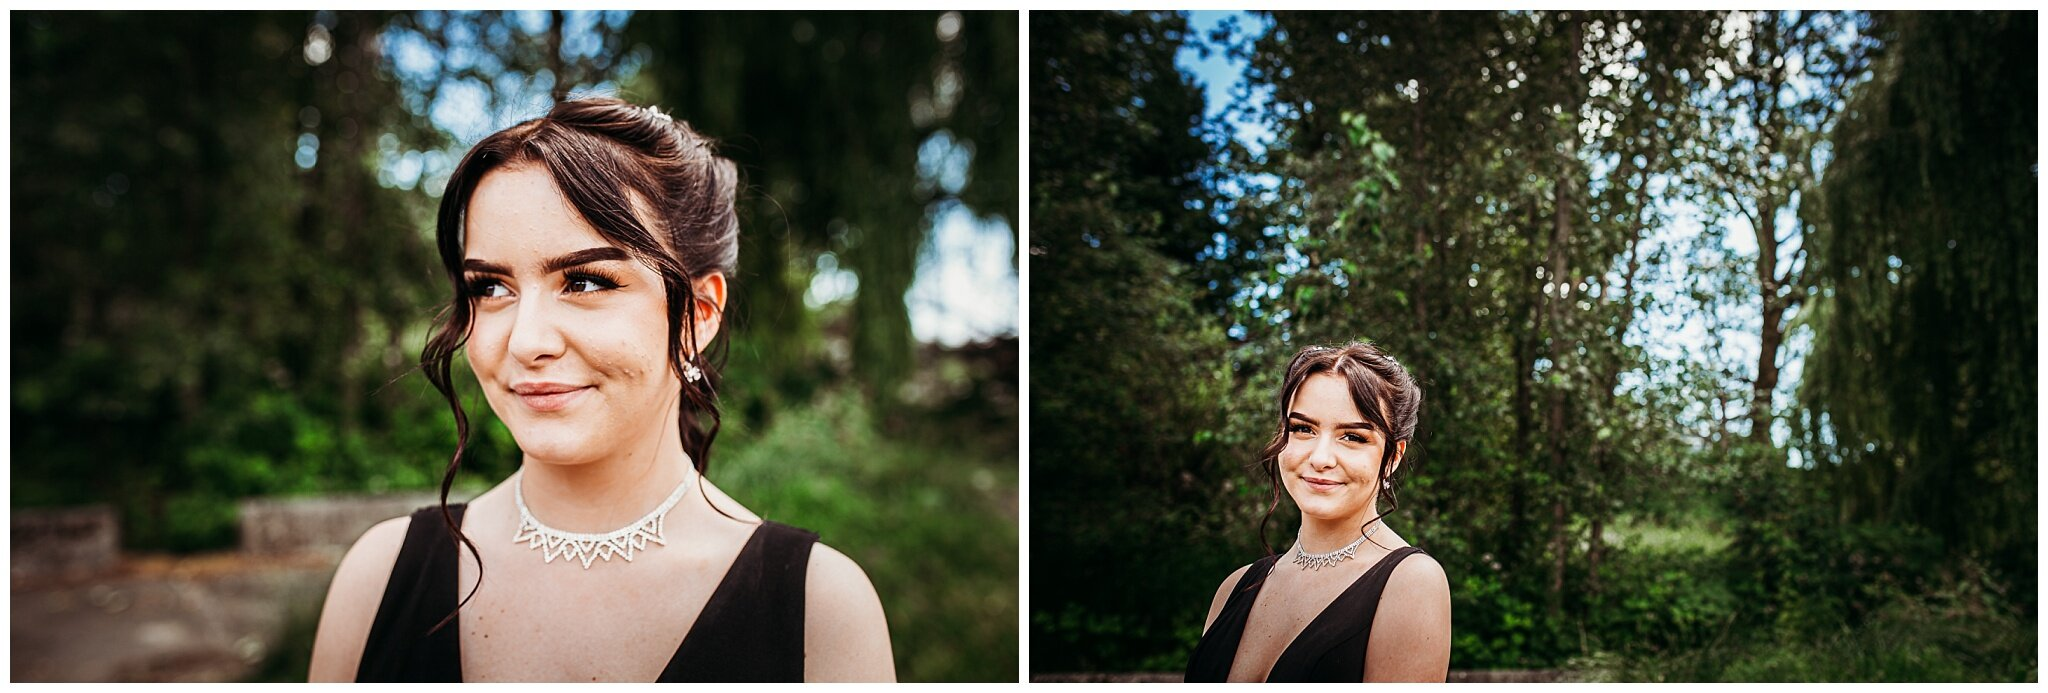 Chilliwack Highschool Prom Graduation Photographer 2019 Abbotsford fun bright_0023.jpg